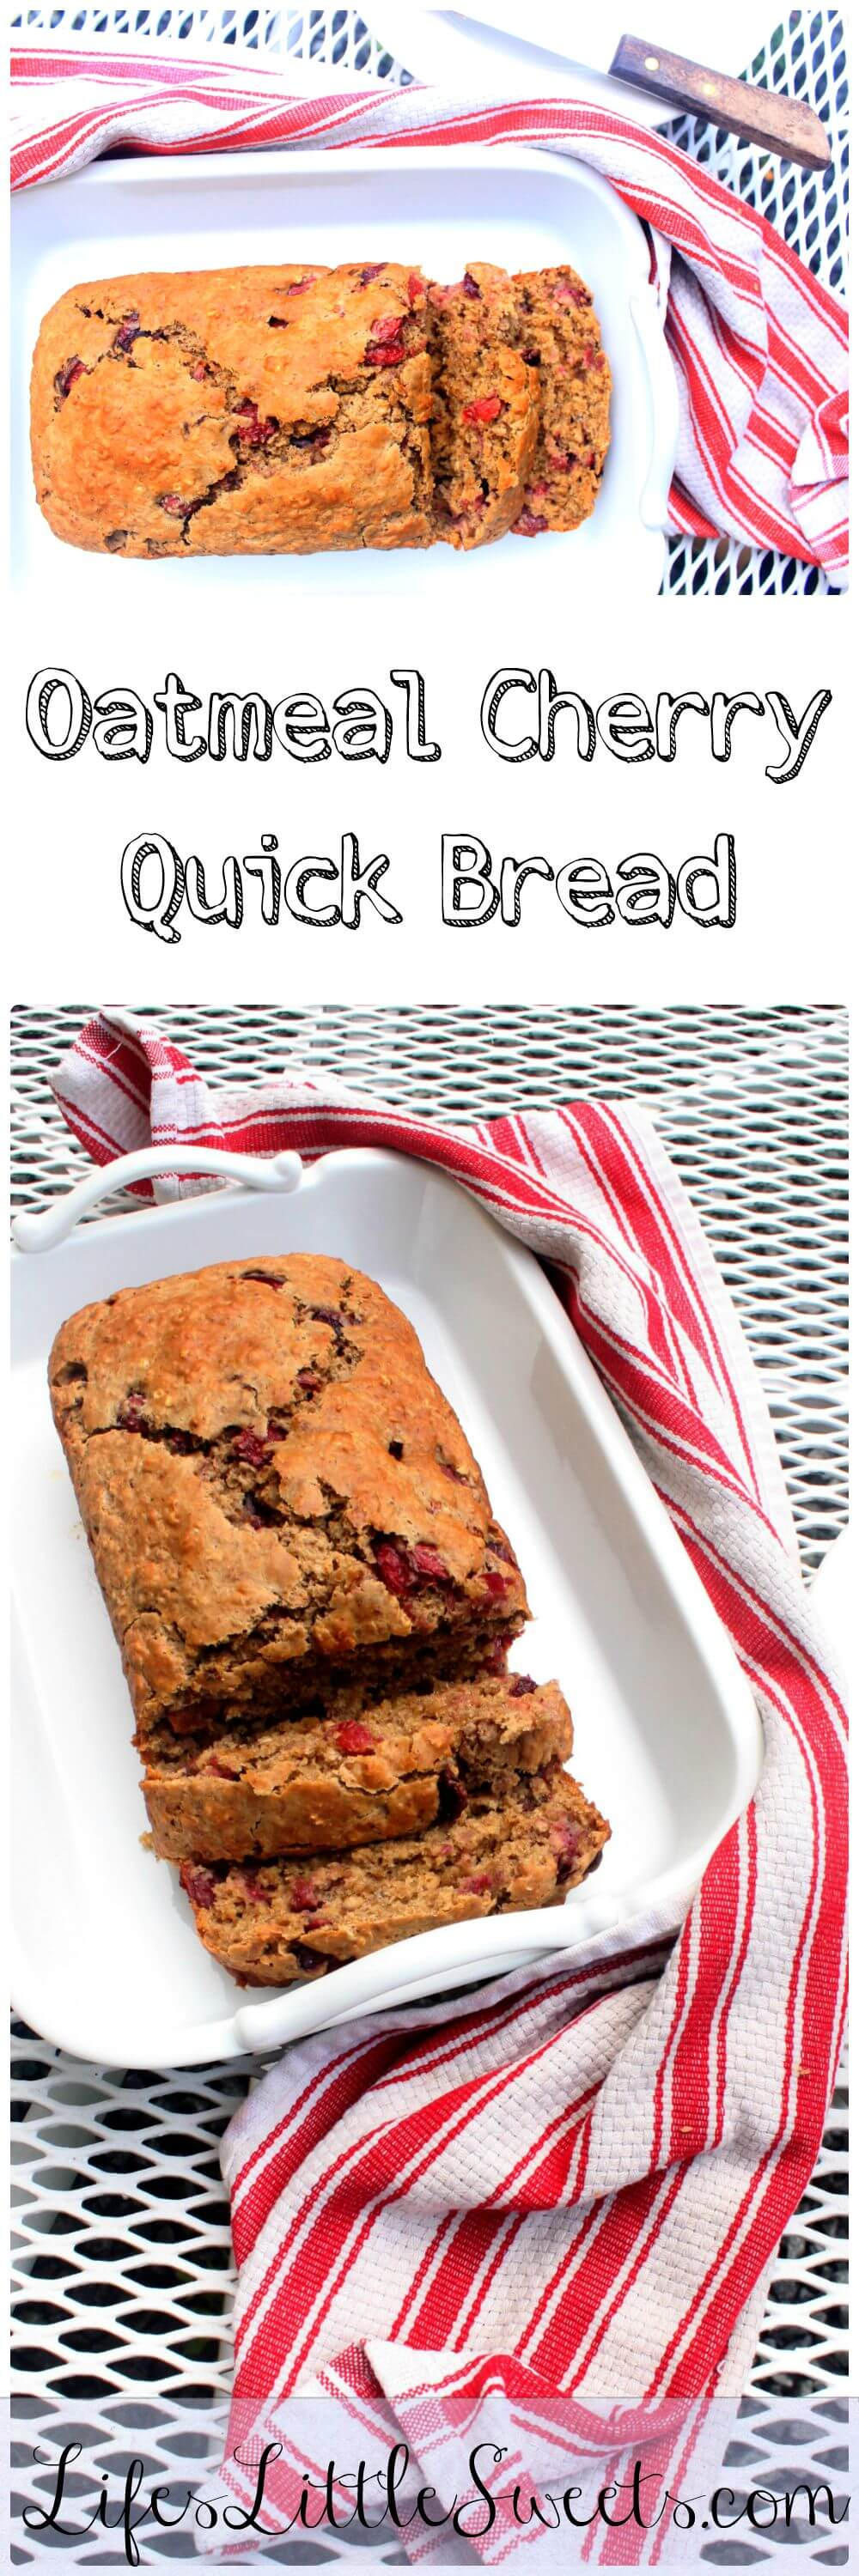 Oatmeal Cherry Quick Bread Pin